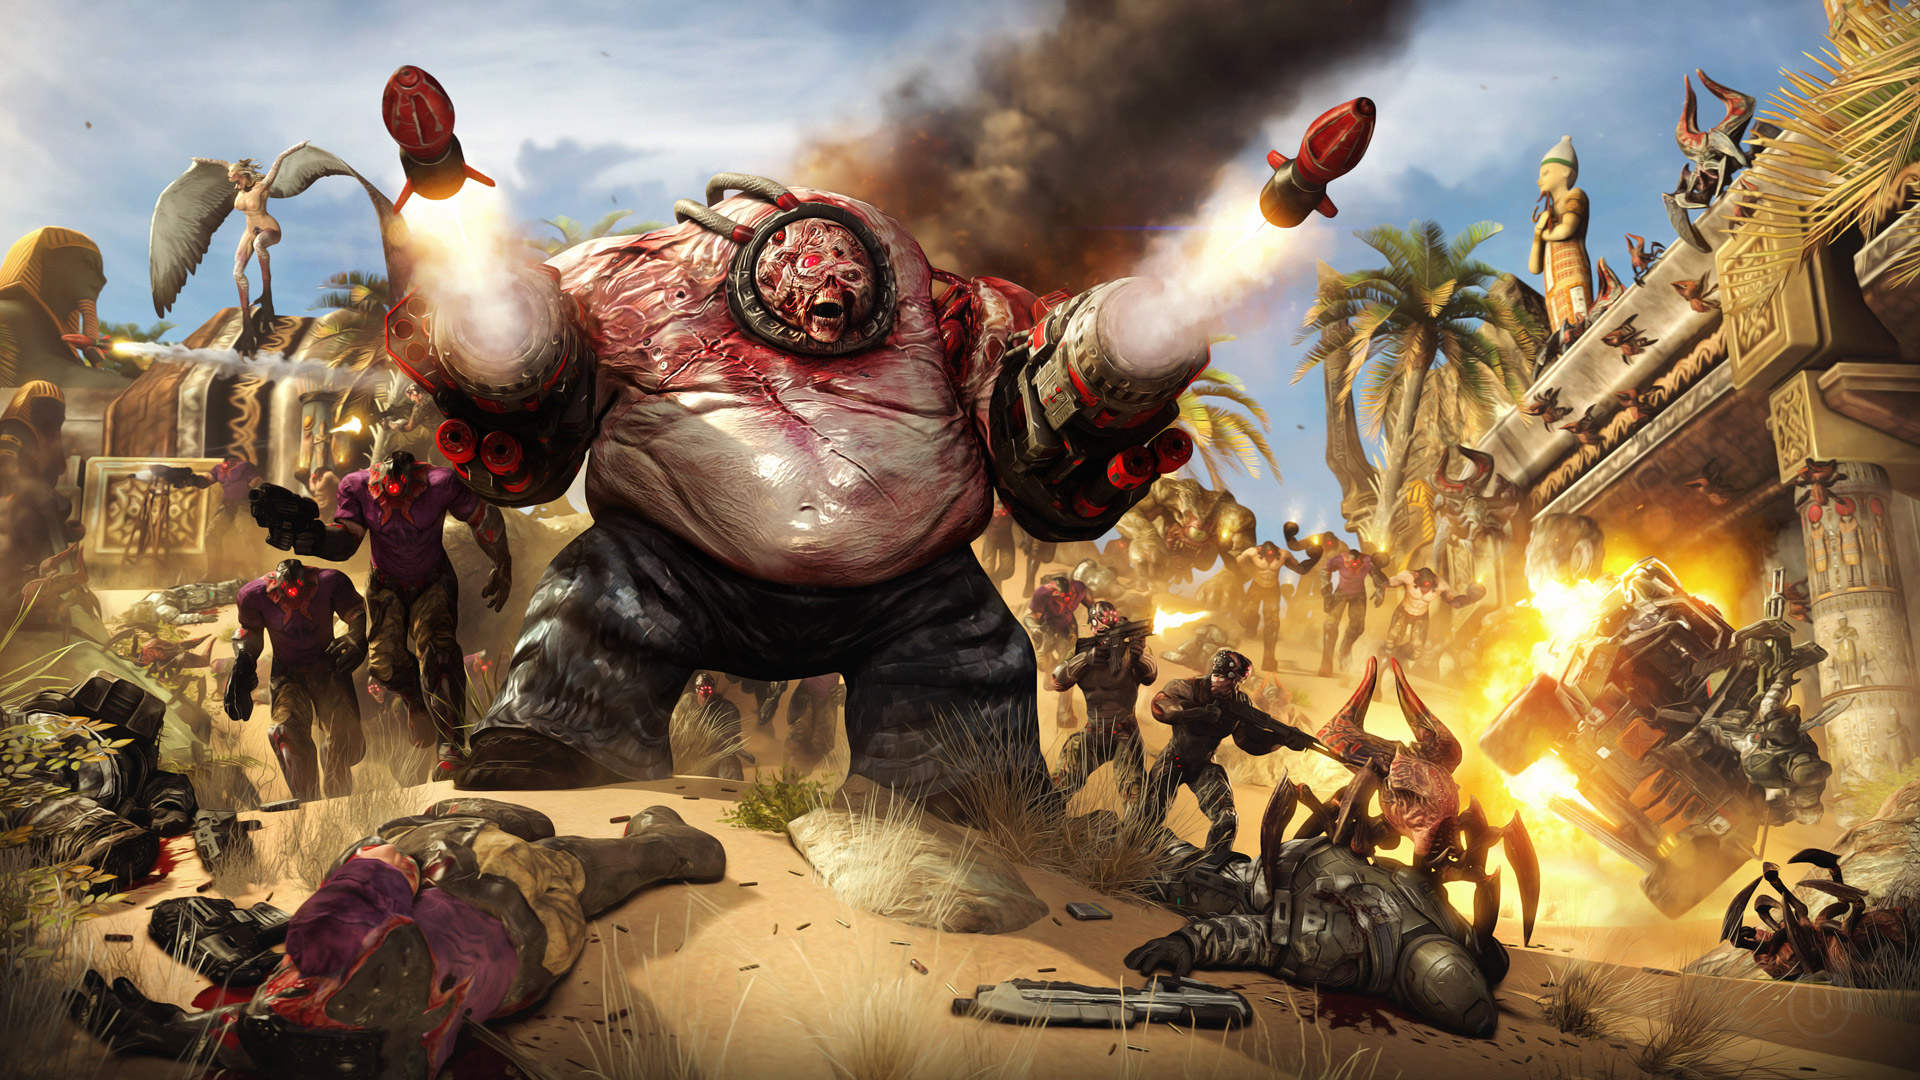 Free Serious Sam 3: BFE Wallpaper in 1920x1080